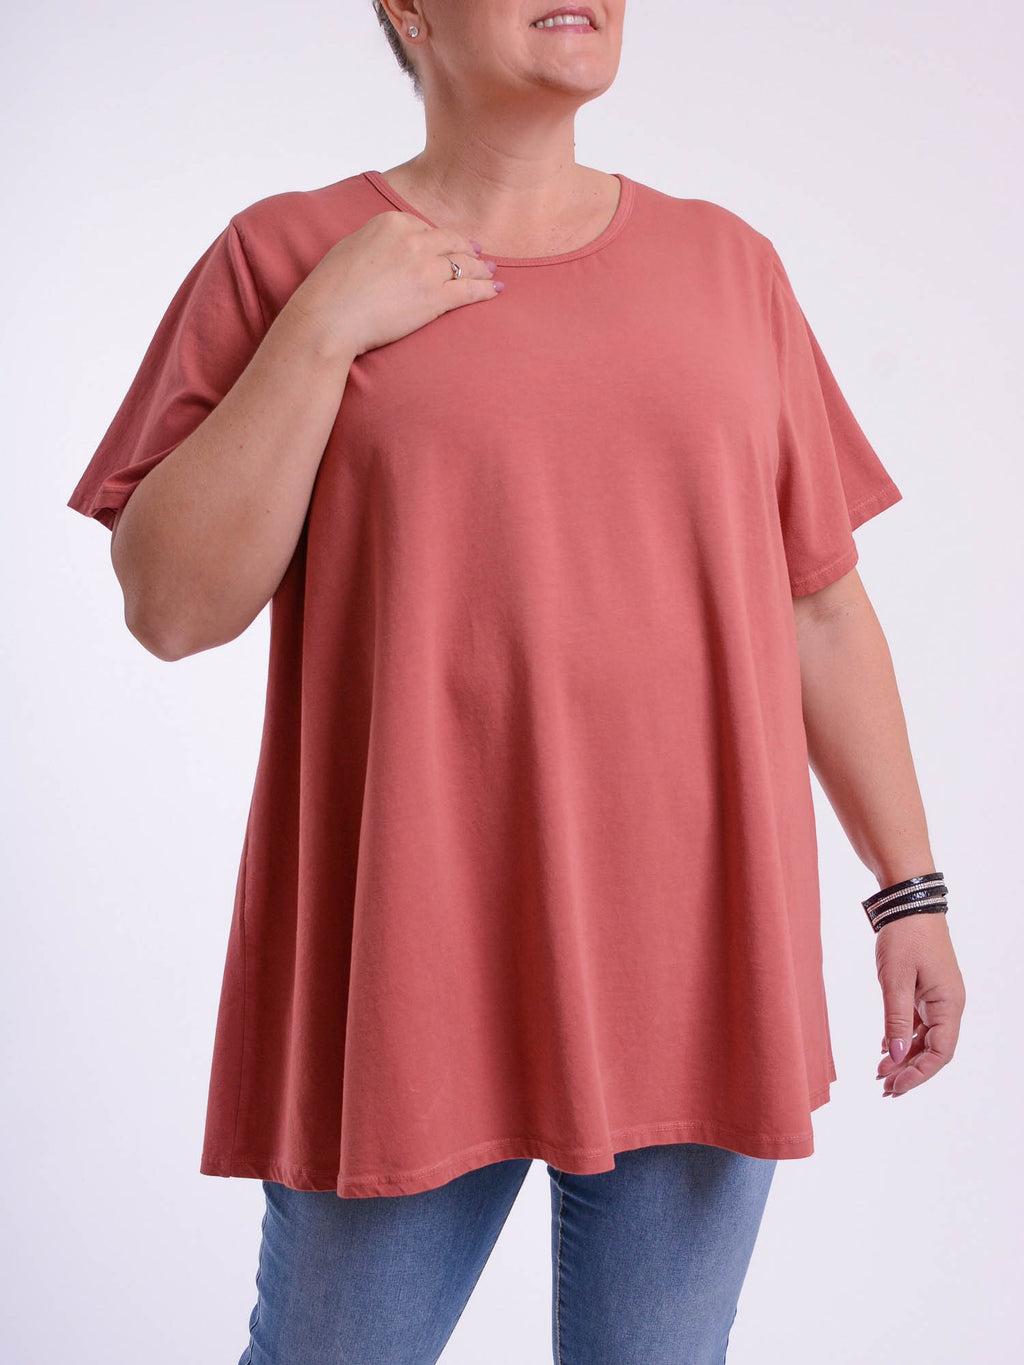 Basic Cotton Swing T Shirt - Round Neck 10516 - Pure Plus Clothing